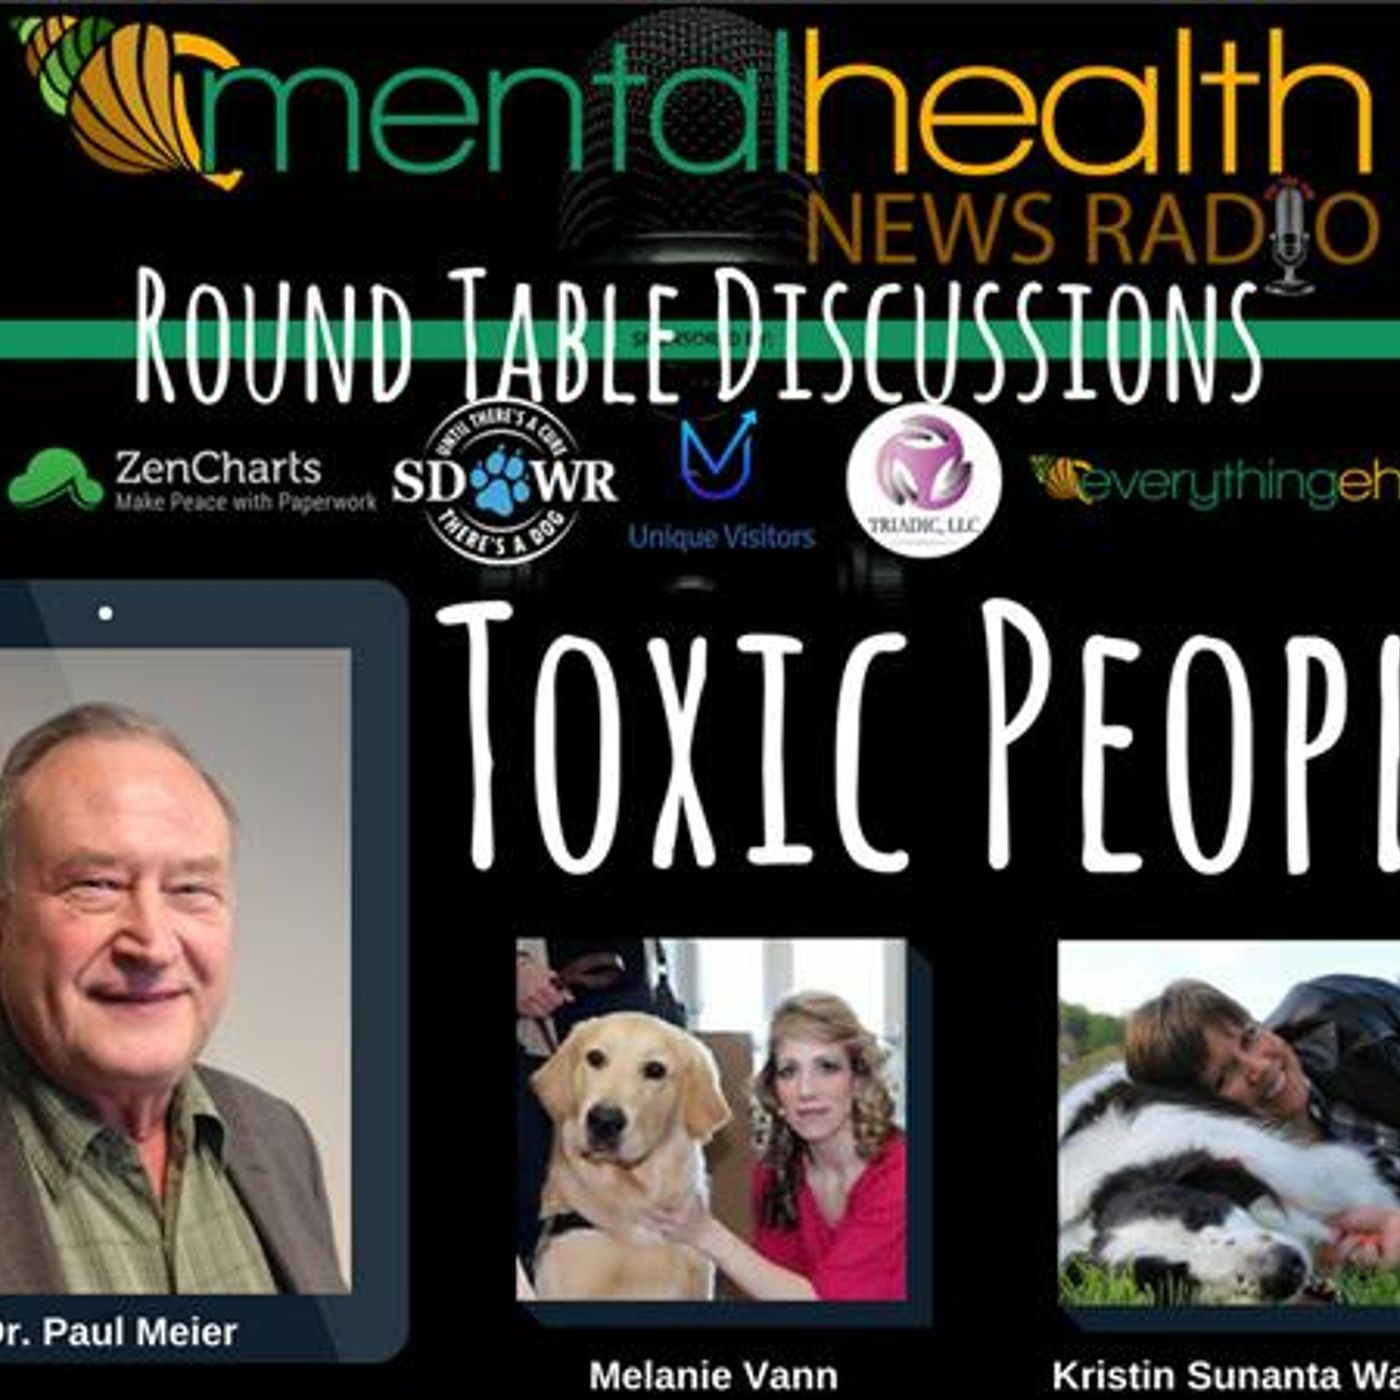 Mental Health News Radio - Round Table Discussions with Dr. Paul Meier: Toxic People